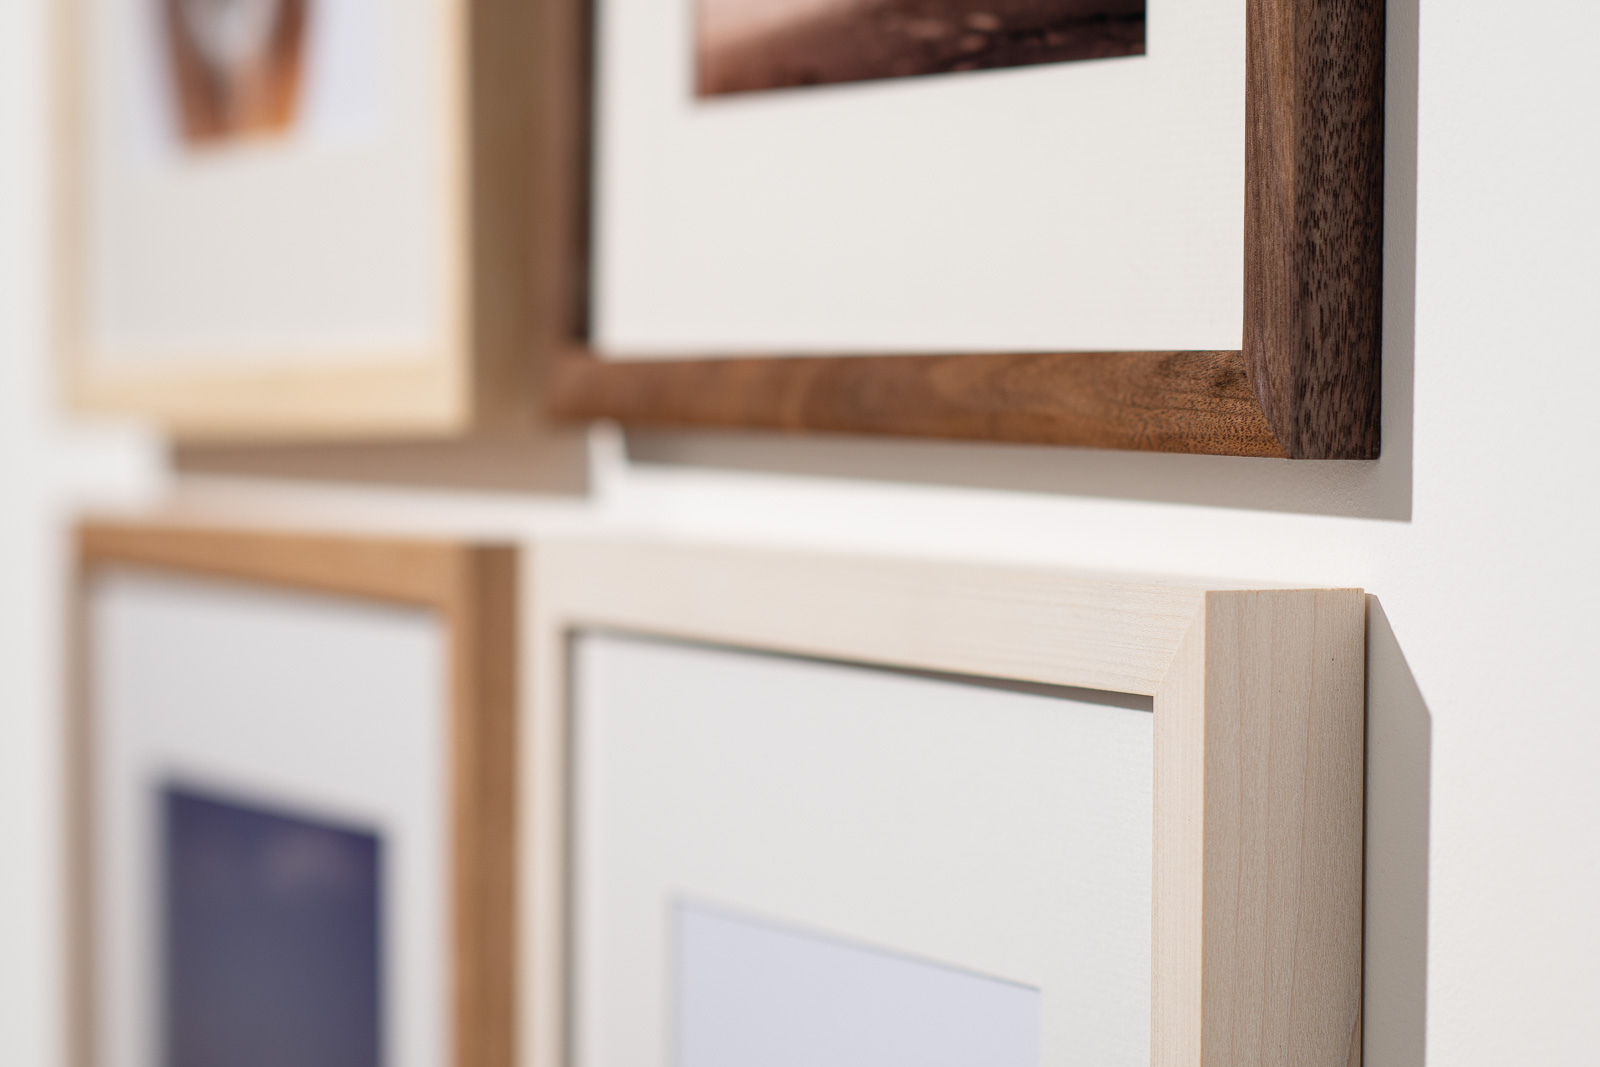 close up photo of four hardwood picture frames on a wall.